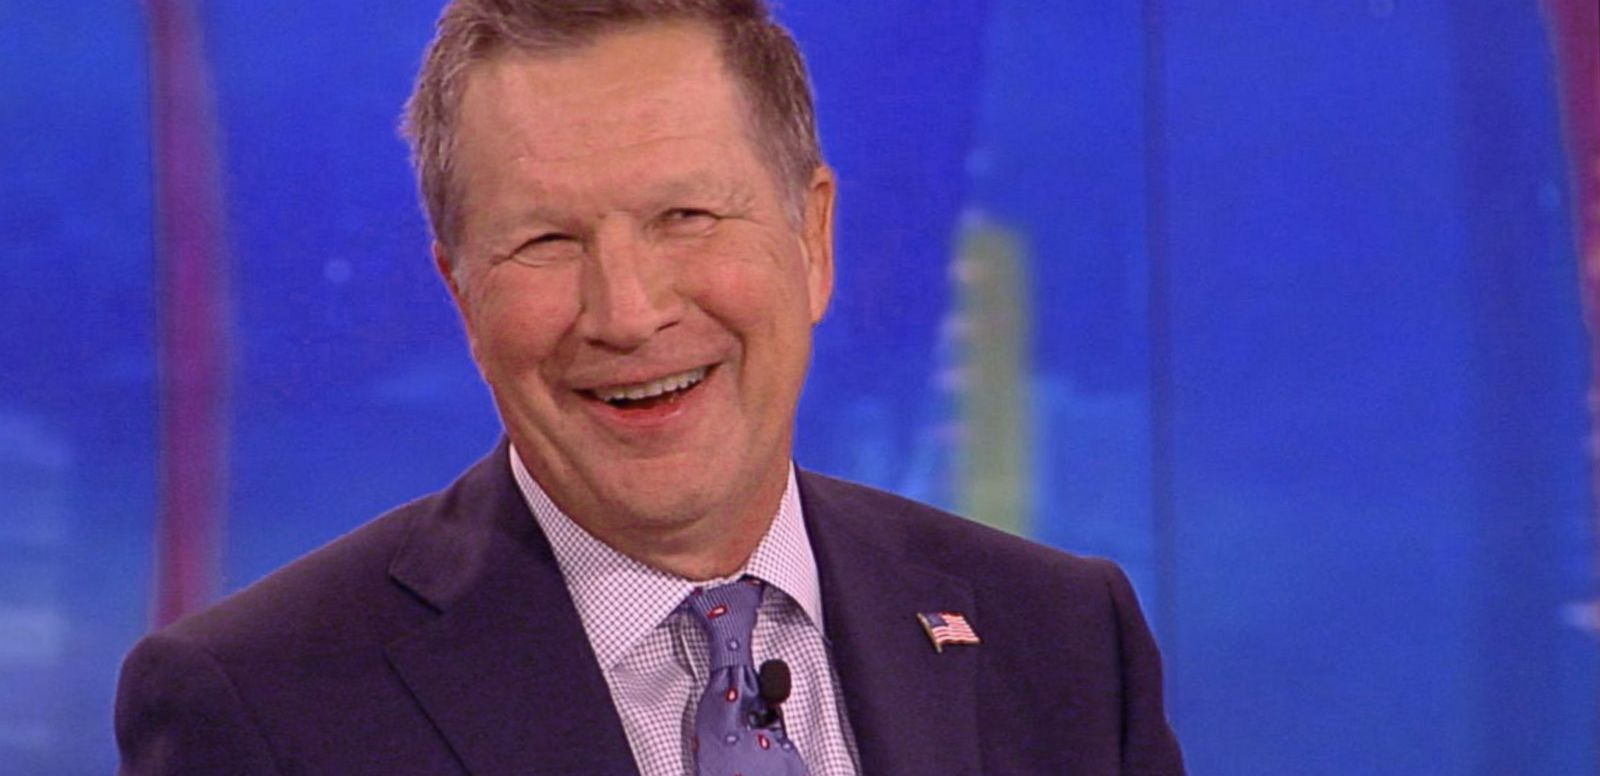 VIDEO: After The View: Governor John Kasich's Meeting with President Nixon